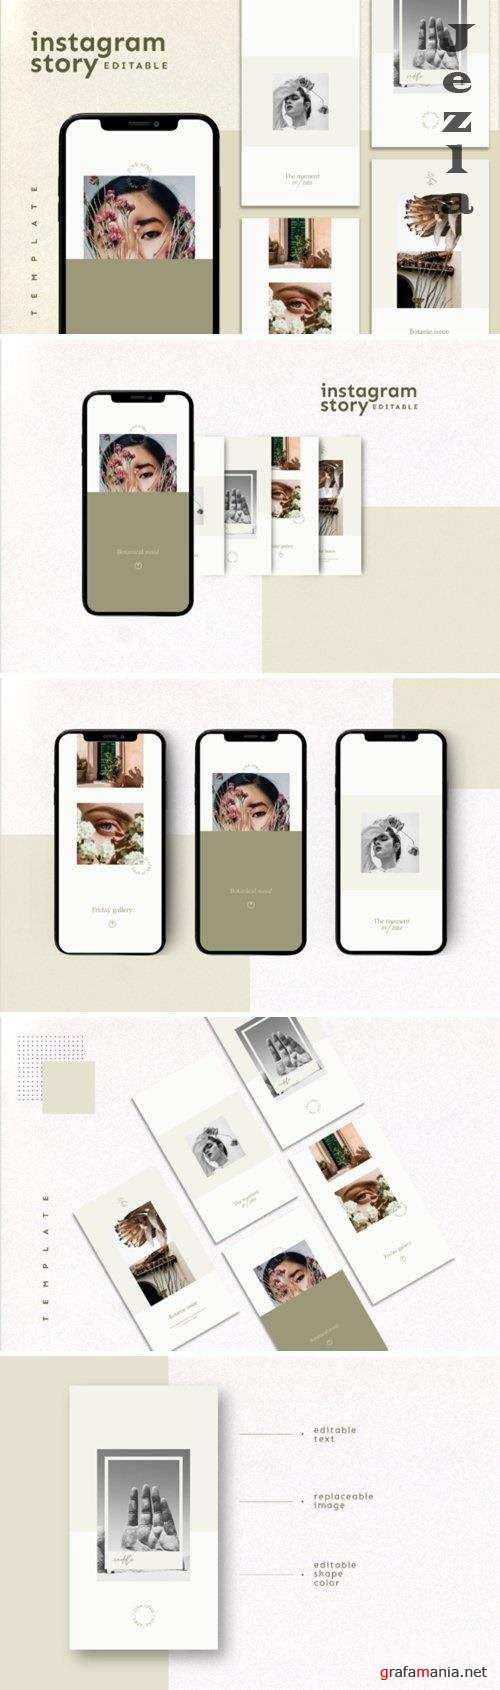 Instagram Story Template - 4762261